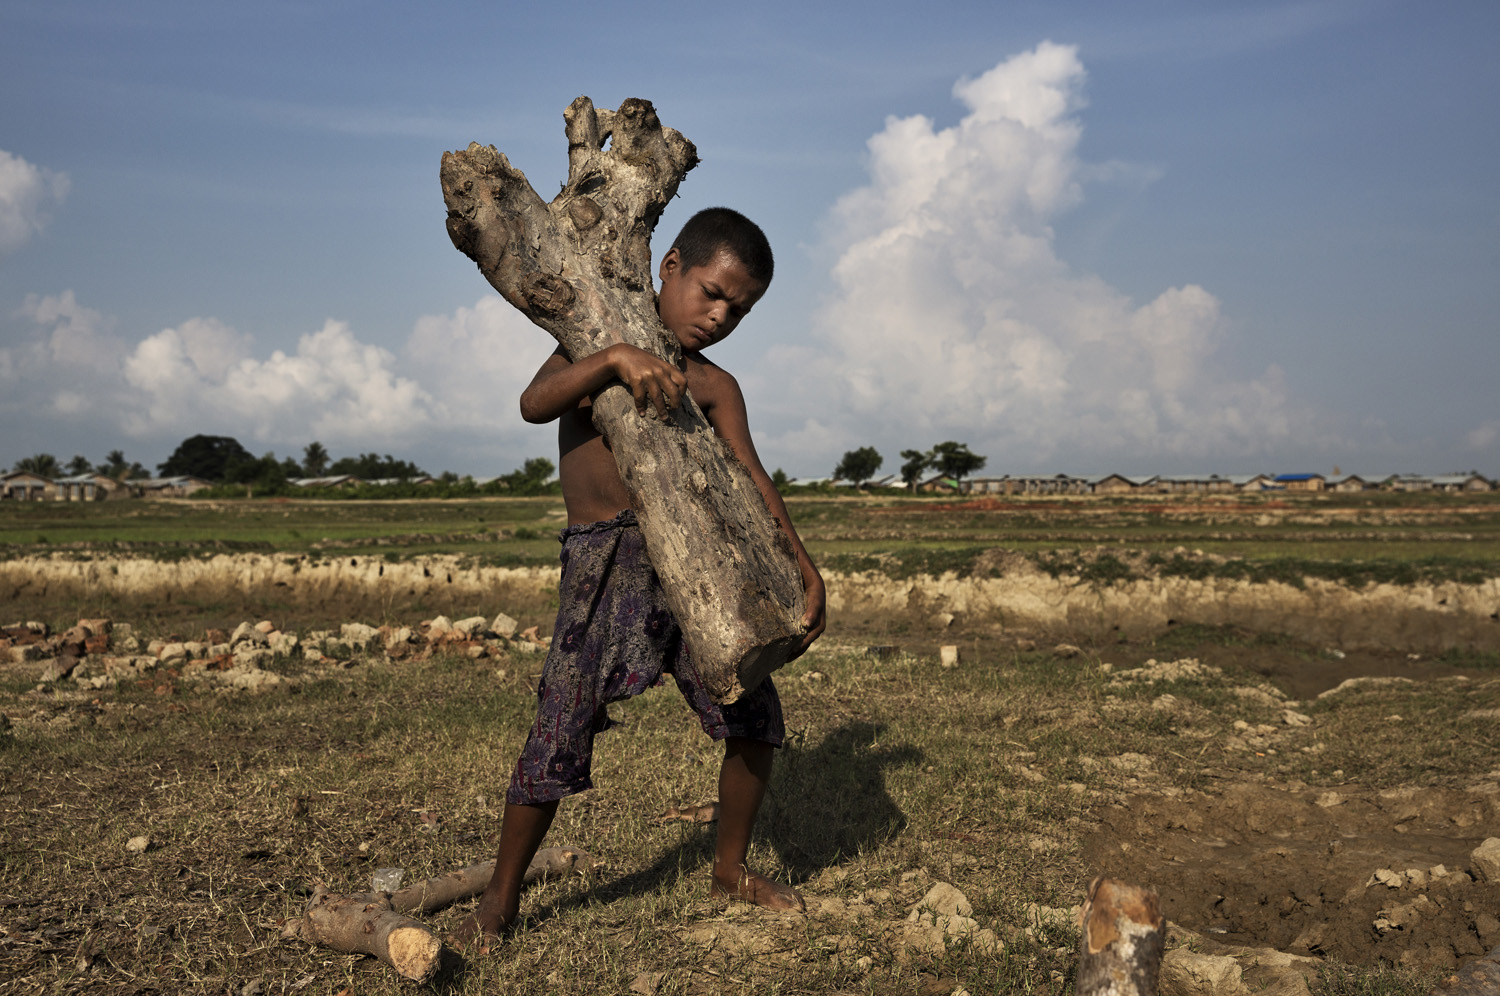 Thek Kay Pyin, 7, is among the Rohingya Muslims interned in Rakhine state,                                   on the northwest coast of Burma. He is seen here working at a brick kiln where he earns $1 a day.